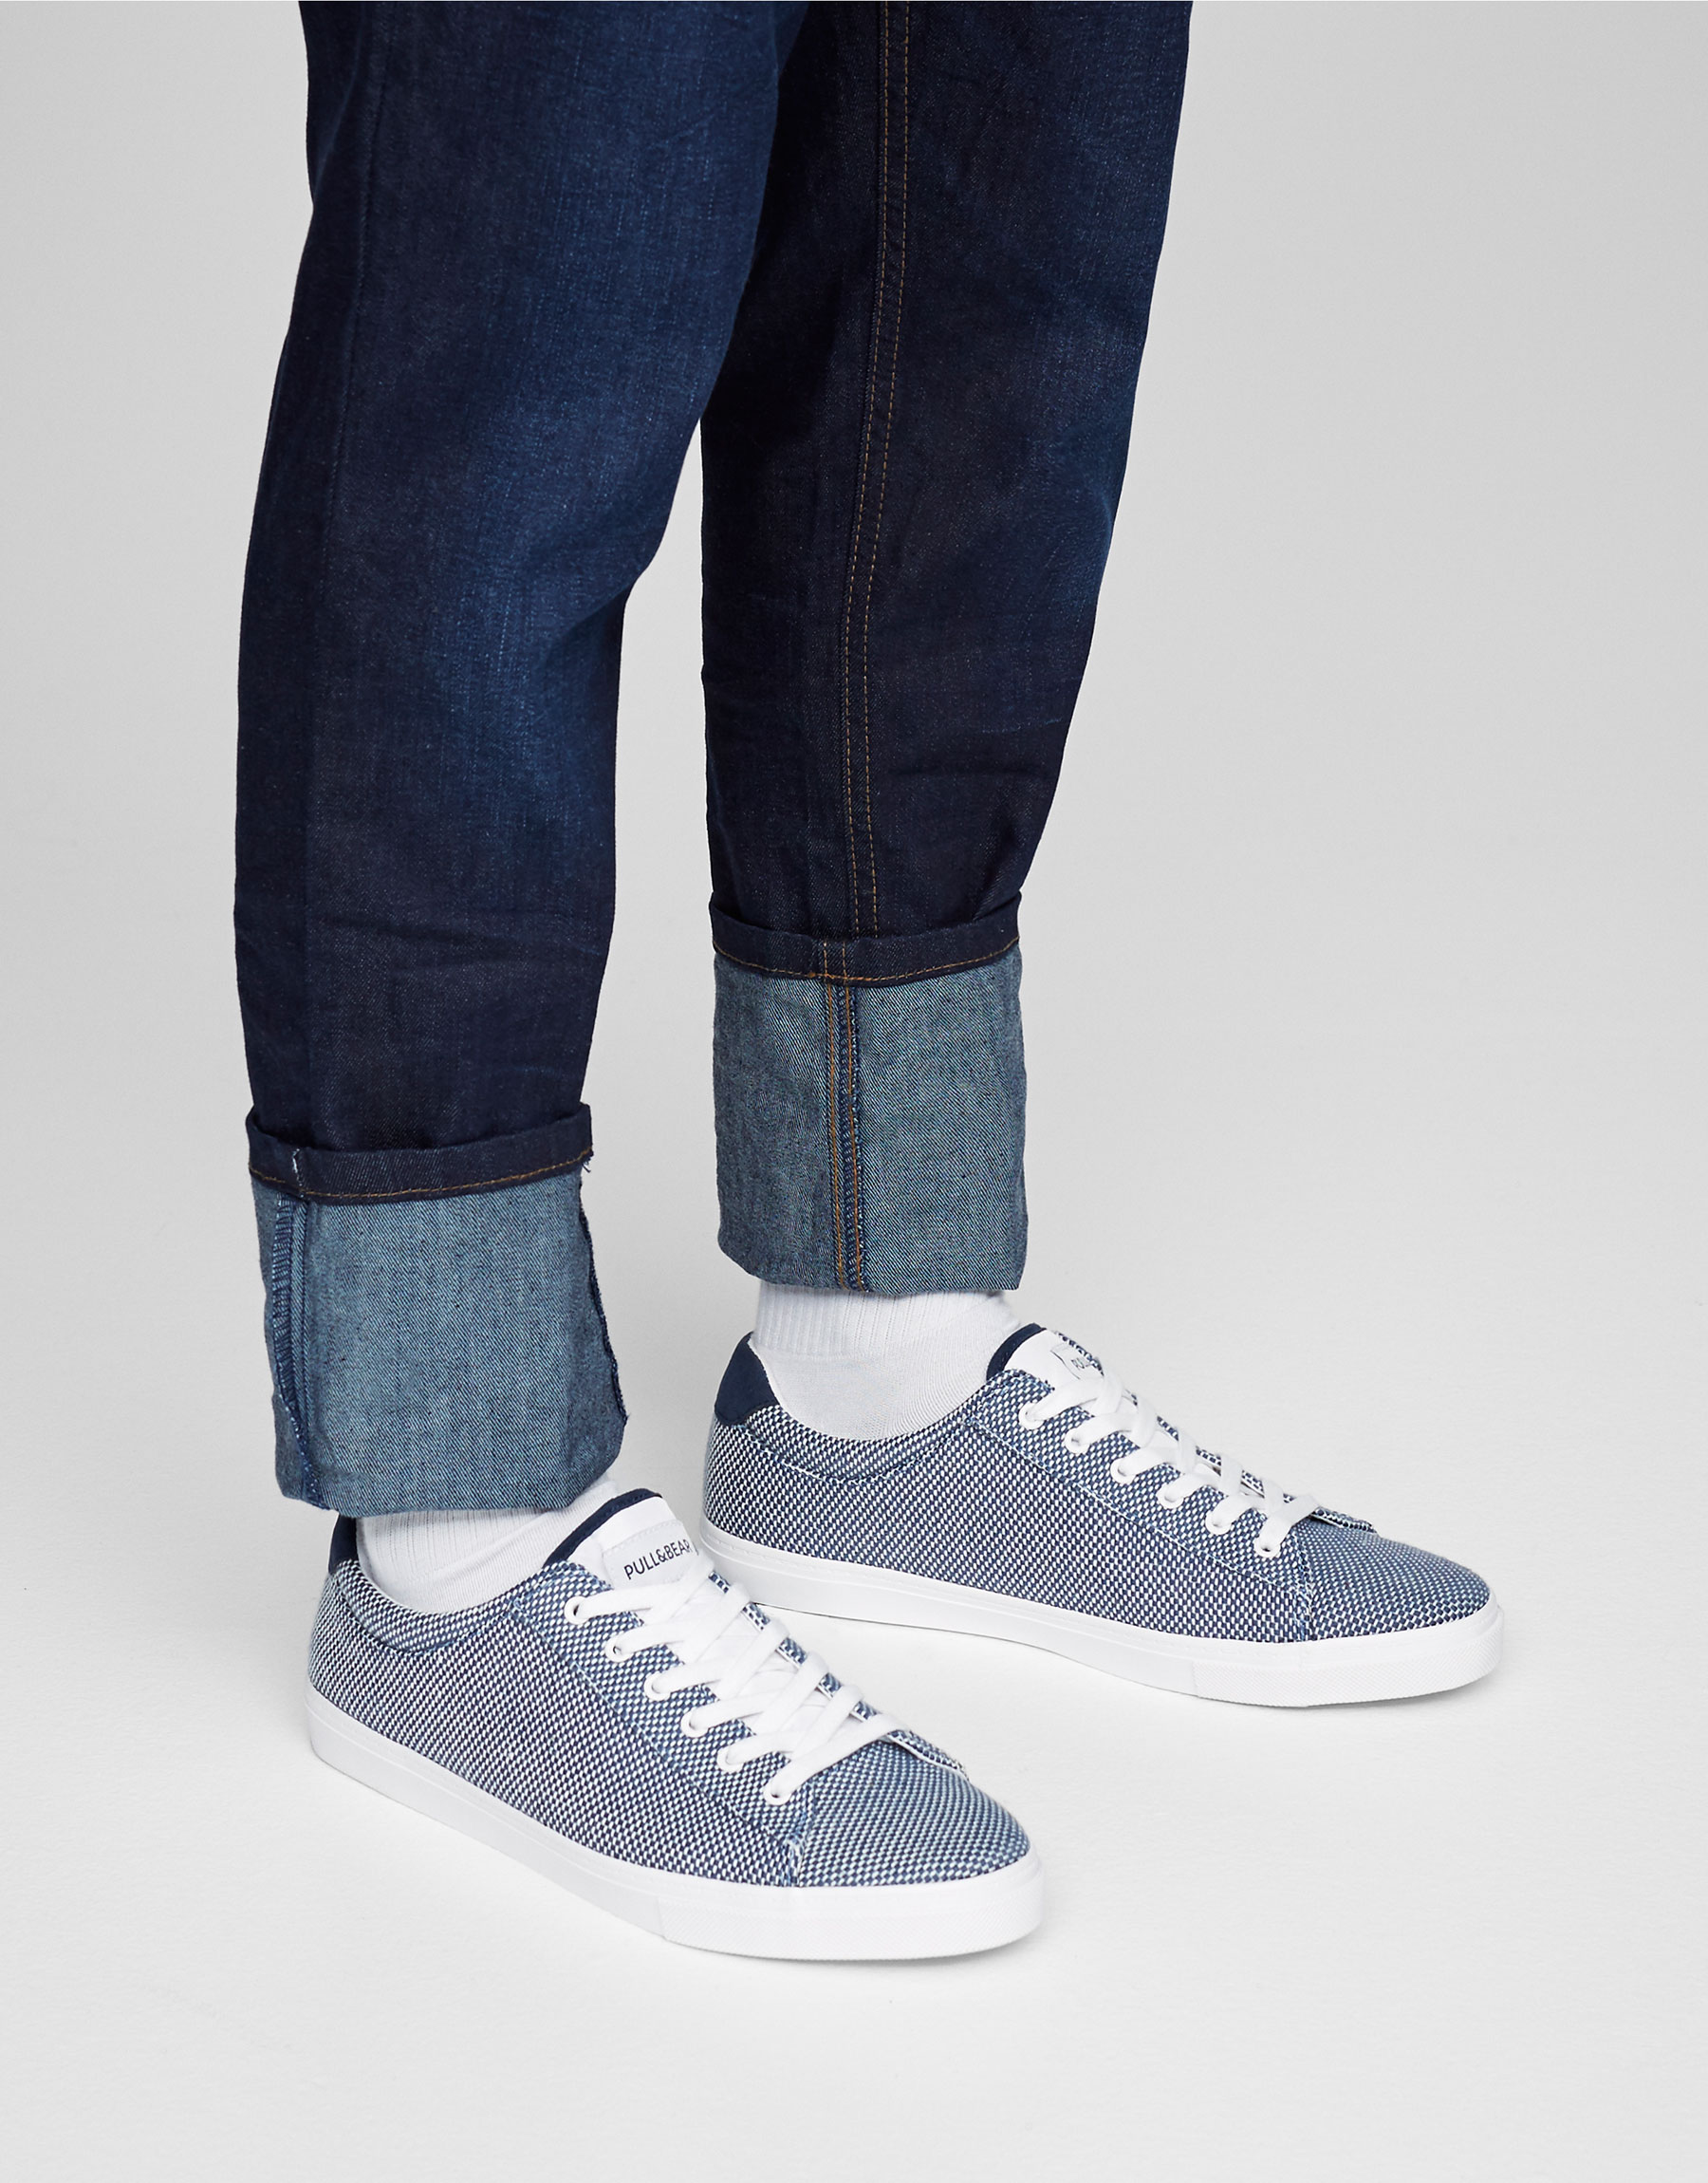 Blue canvas plimsolls